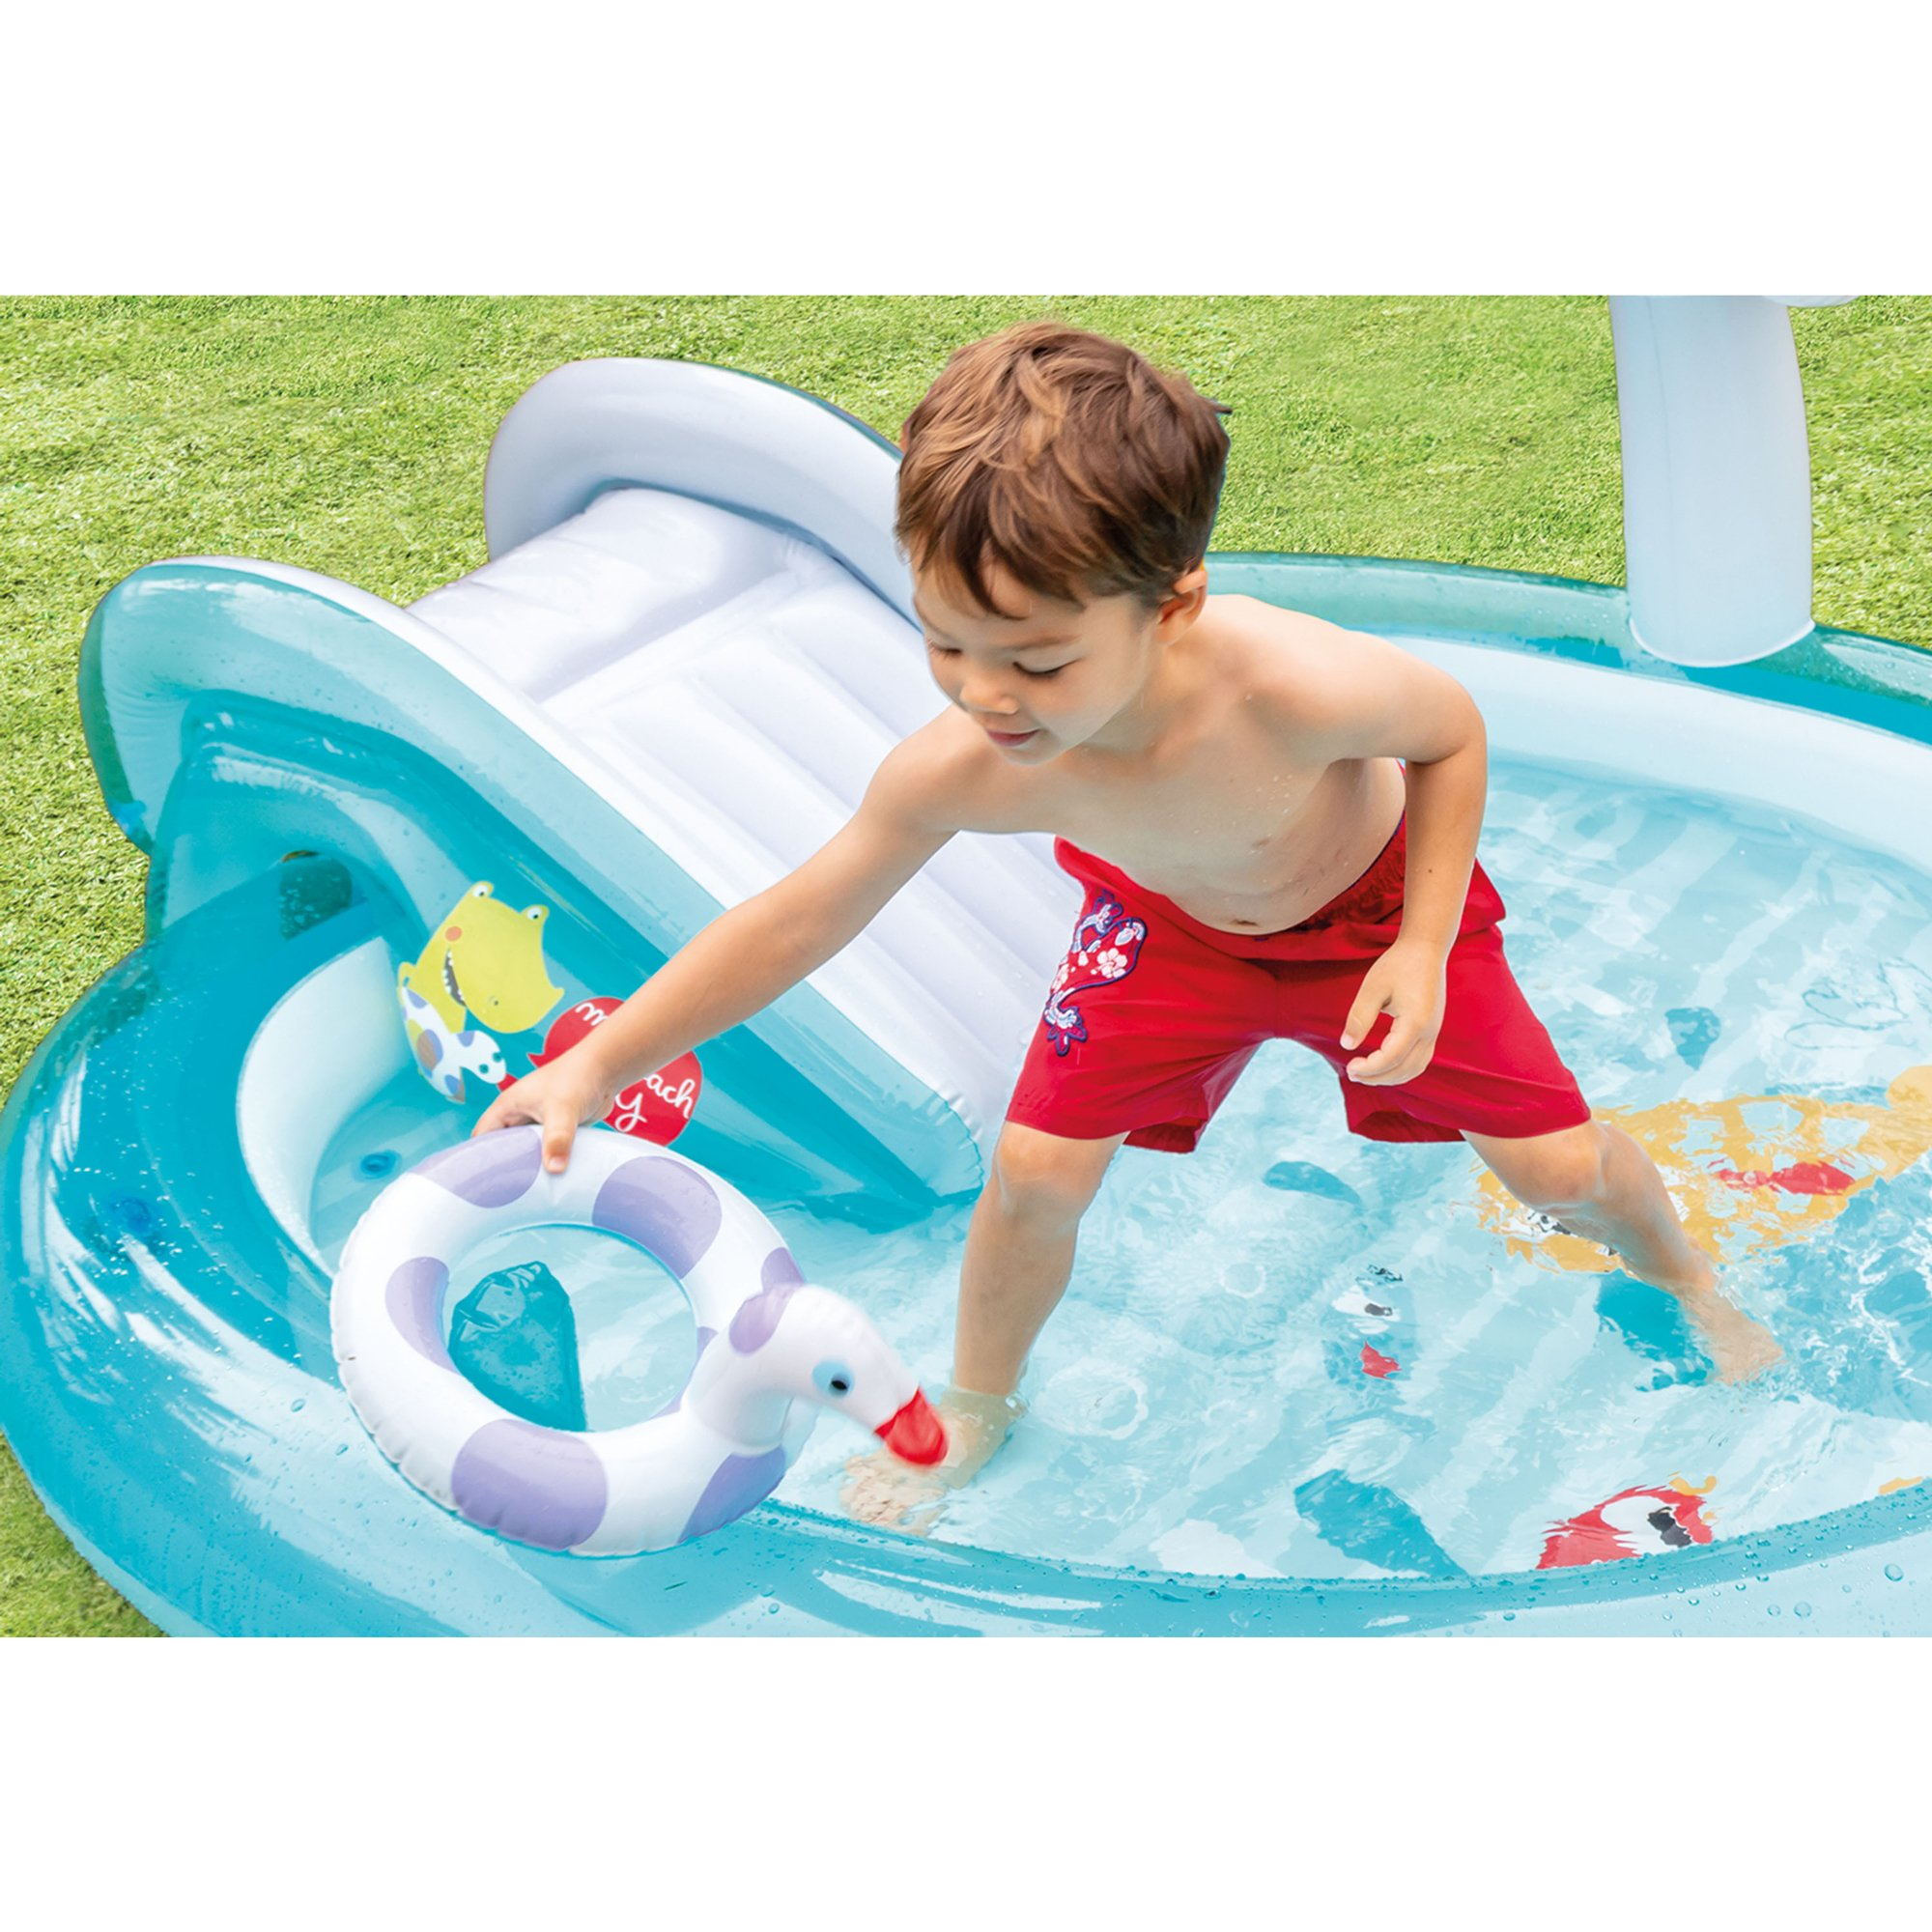 Gator Outdoor Inflatable Swimming Kiddie Pool Water Play Center with Slide